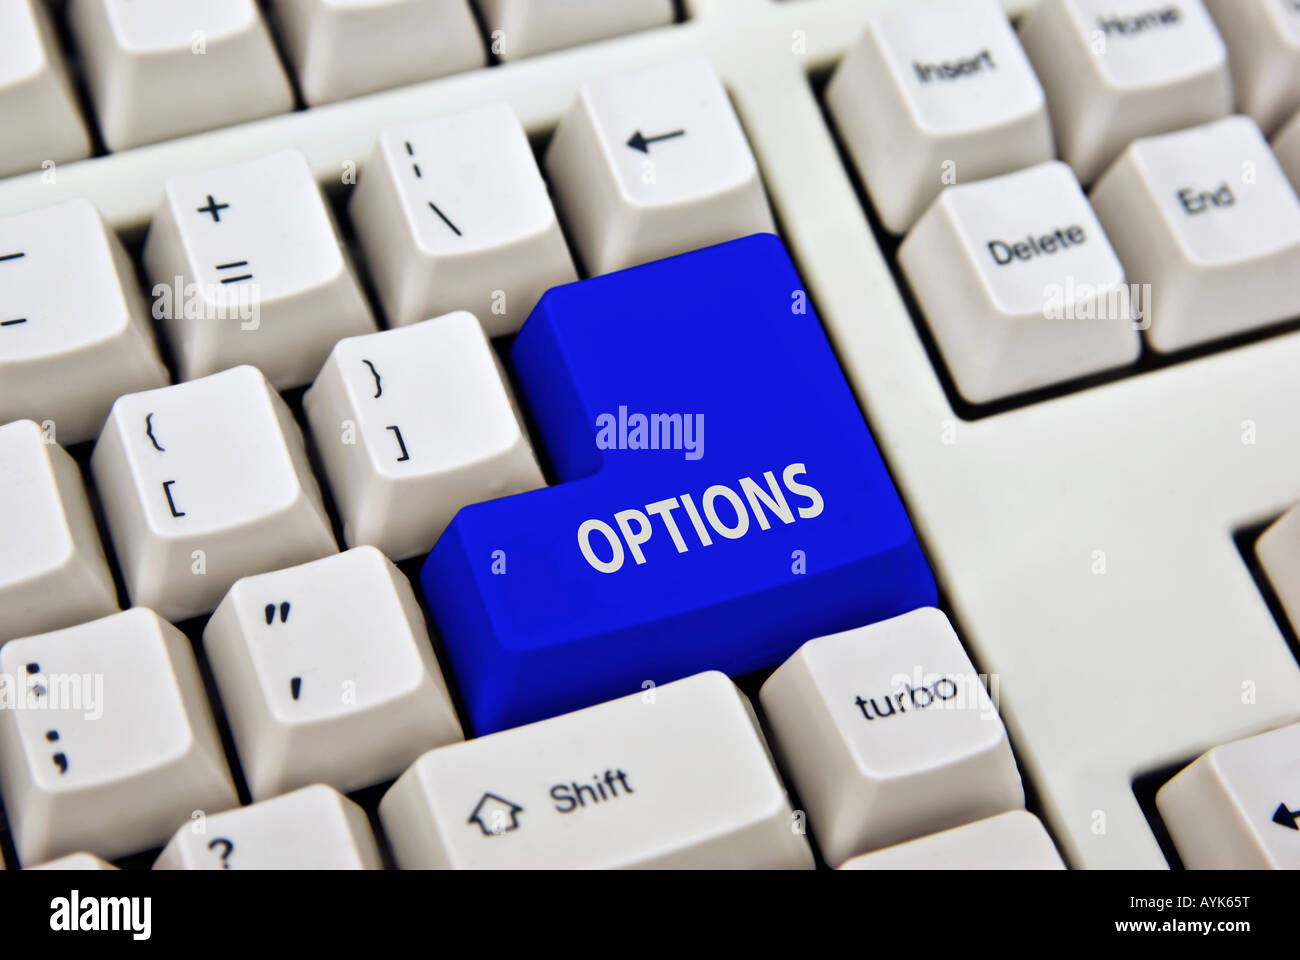 Whether you need IT business or financial options this is the key to press - Stock Image